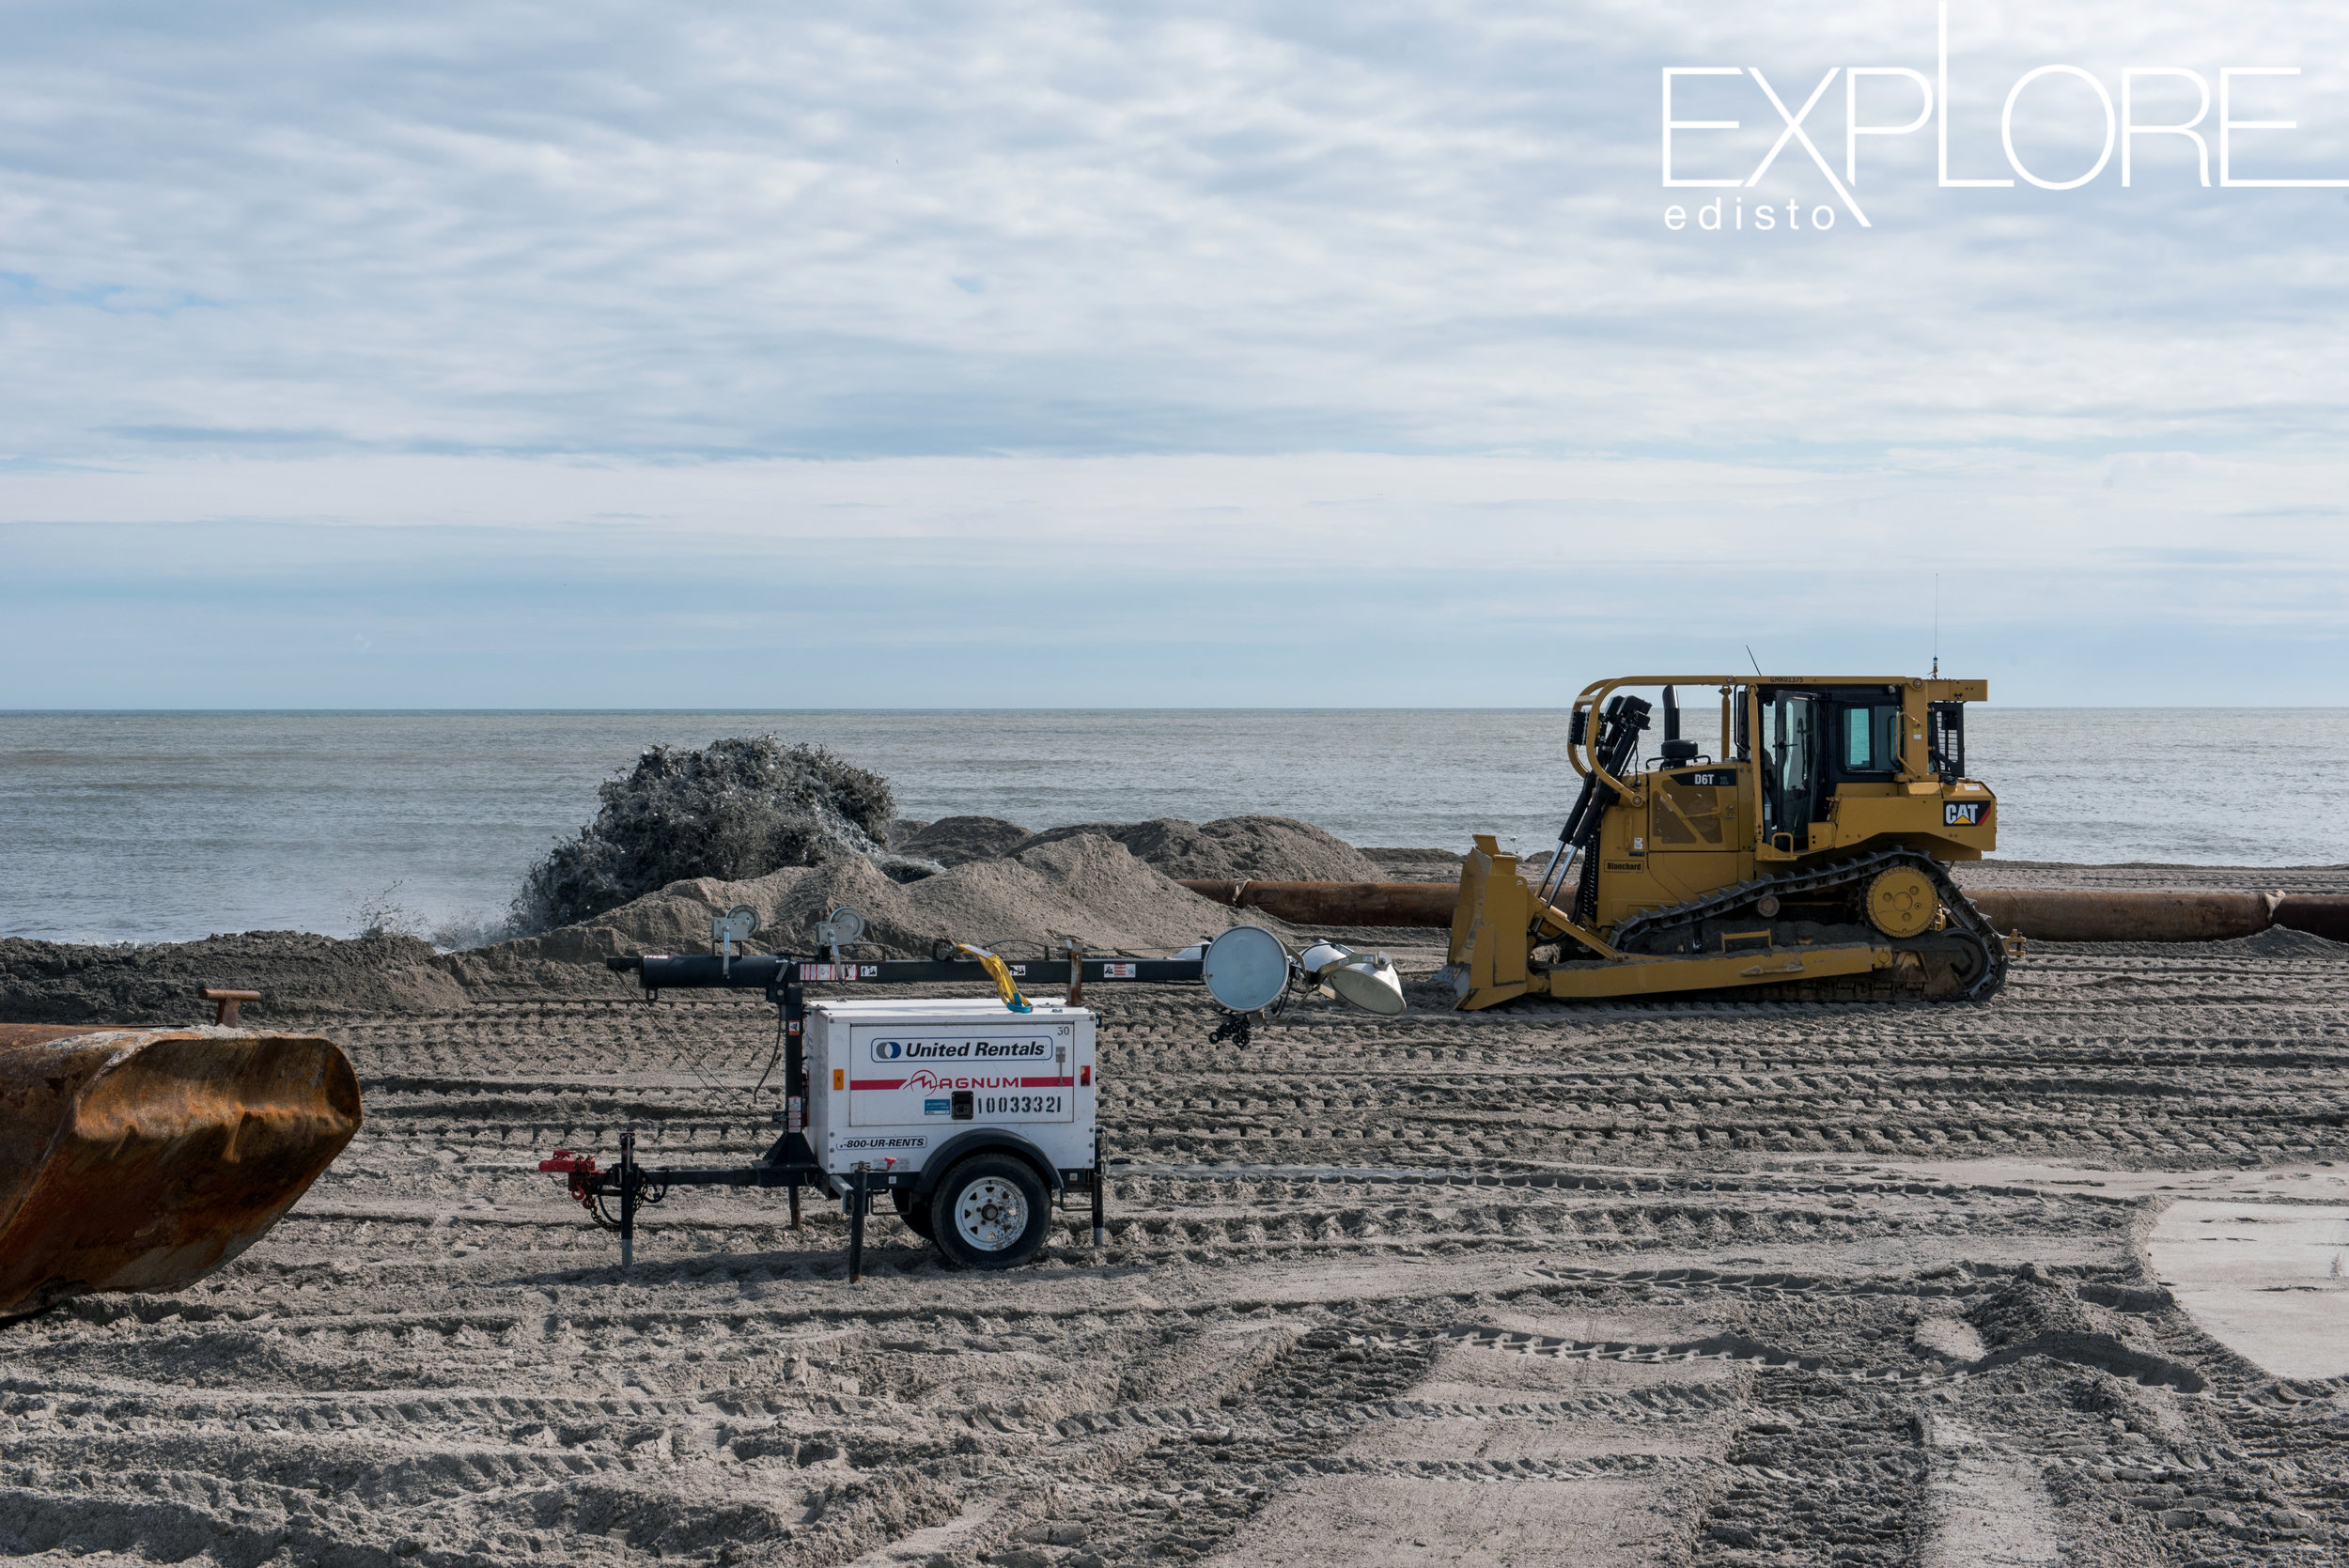 Tractor and sand being pumped onto the beach from the ocean.